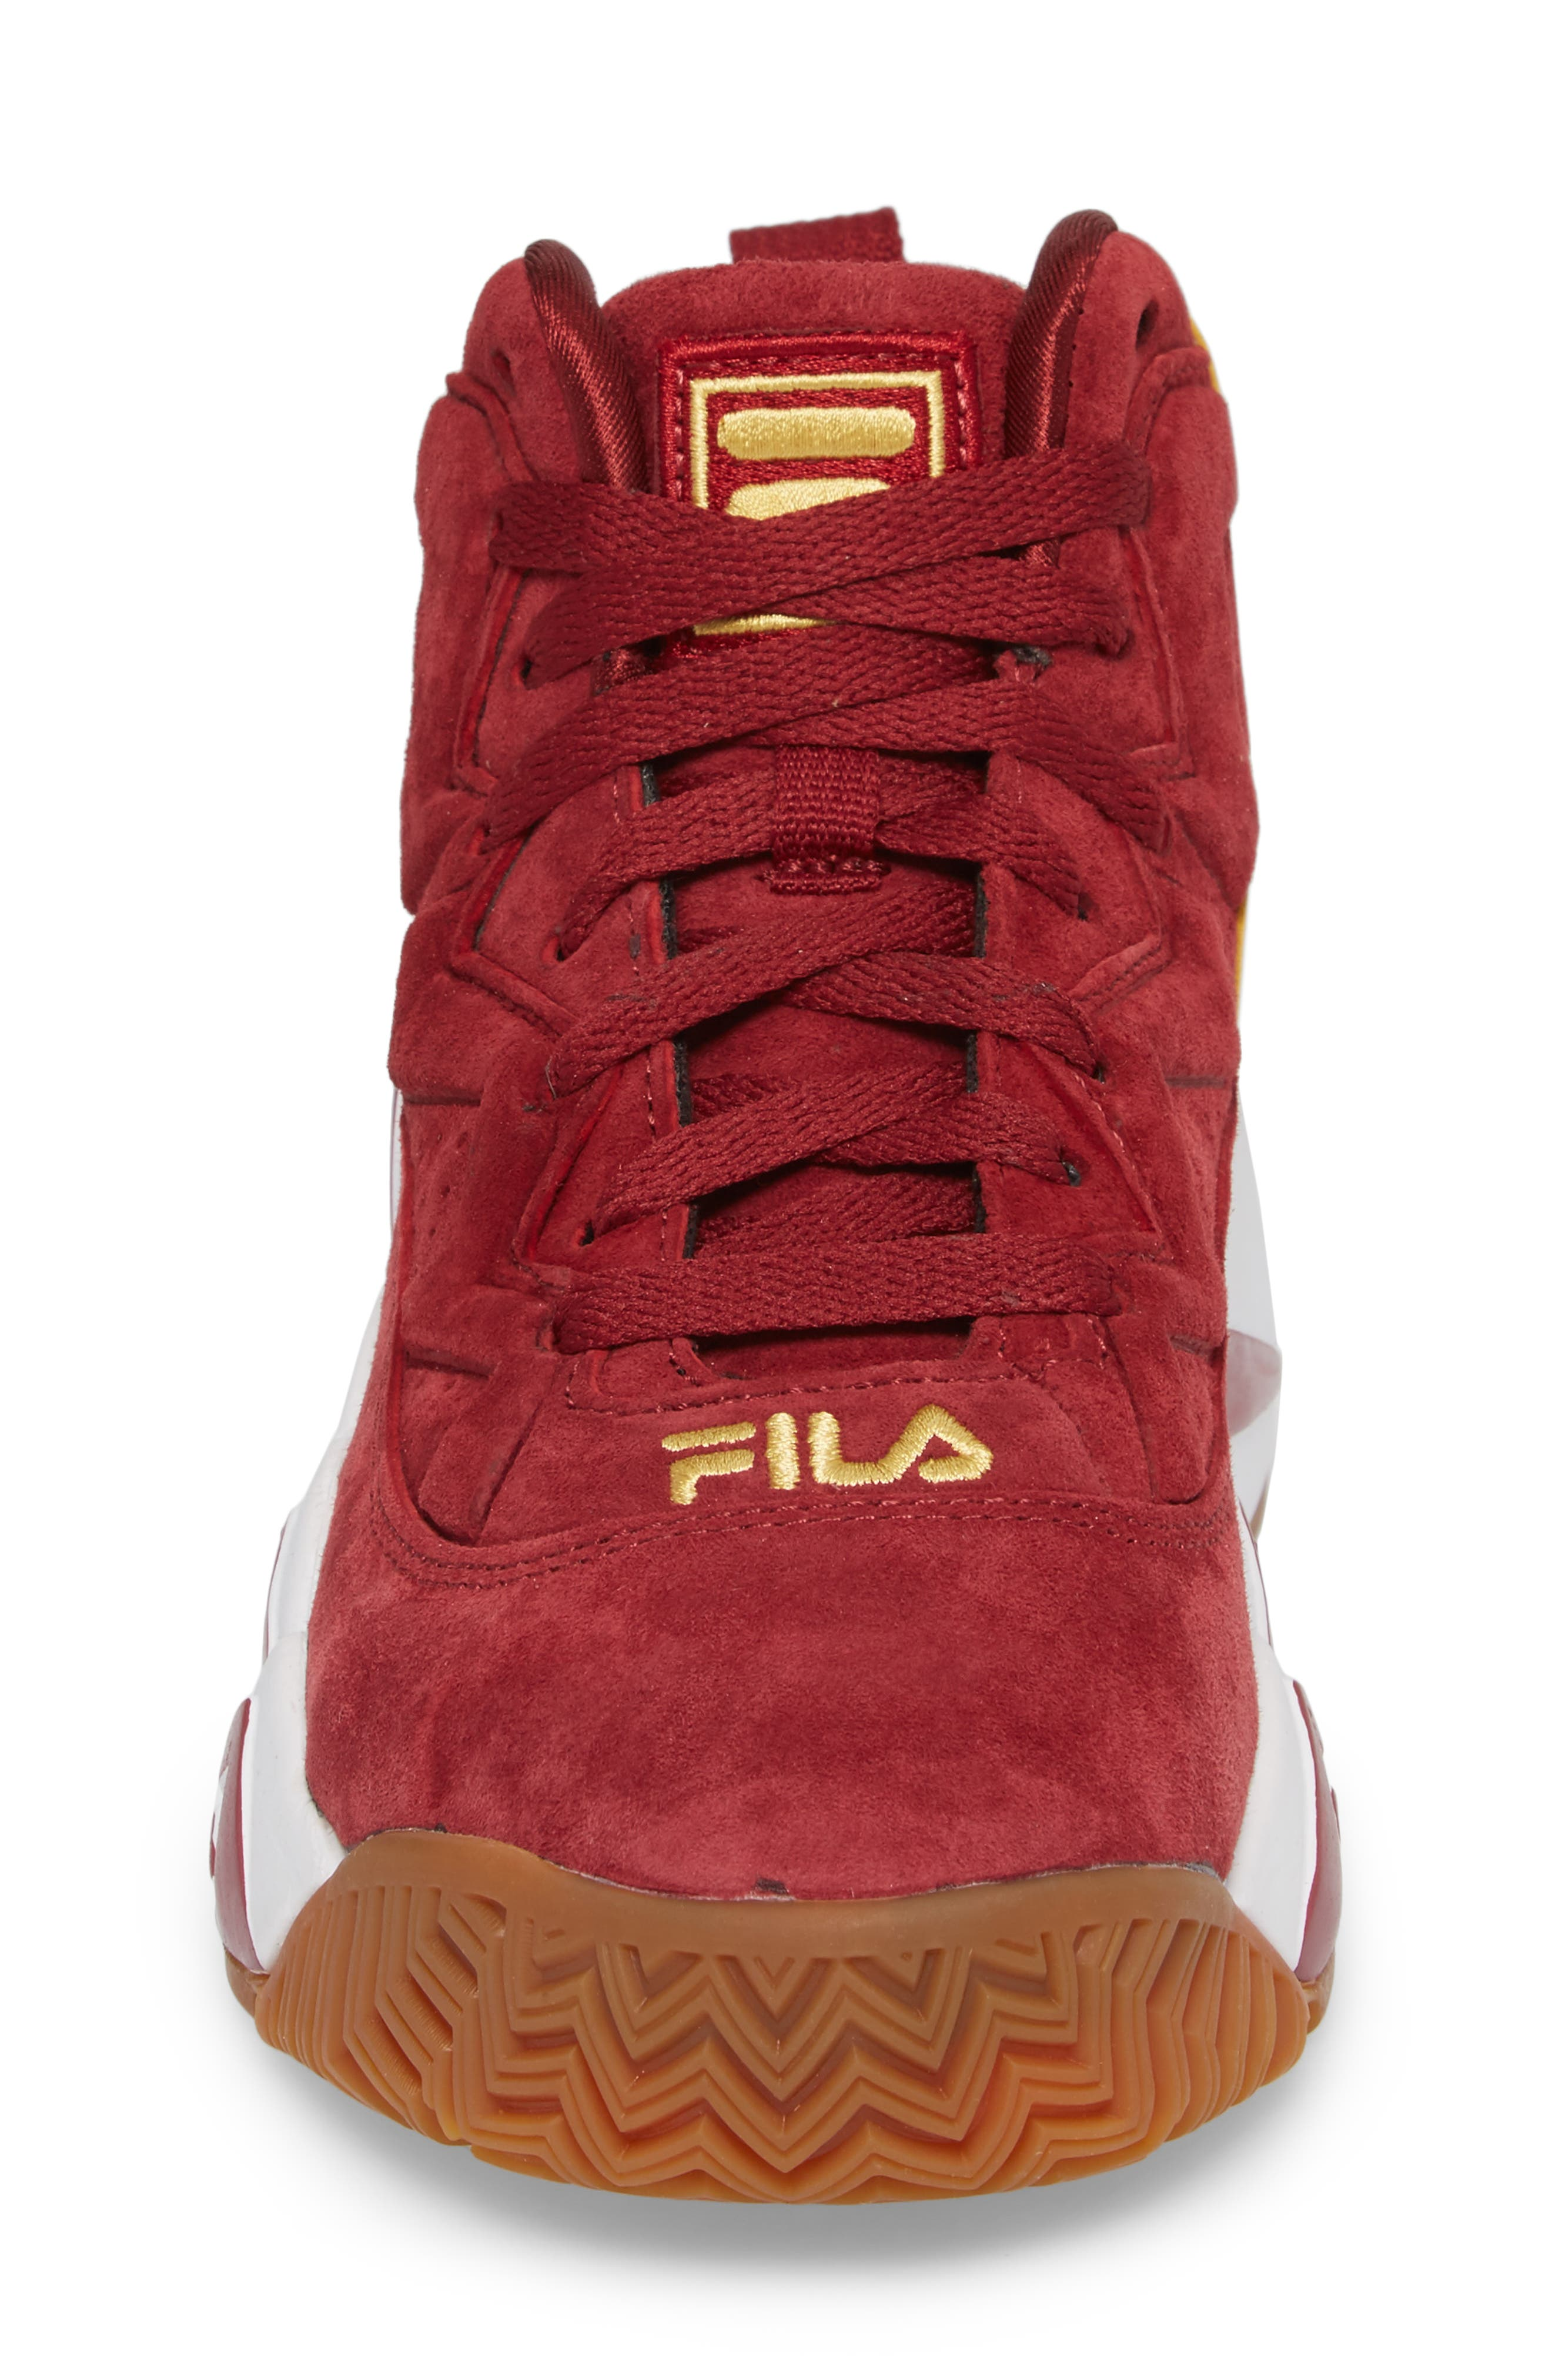 FILA, Heritage Sneaker, Alternate thumbnail 4, color, BIKING RED/ GOLD/ WHITE